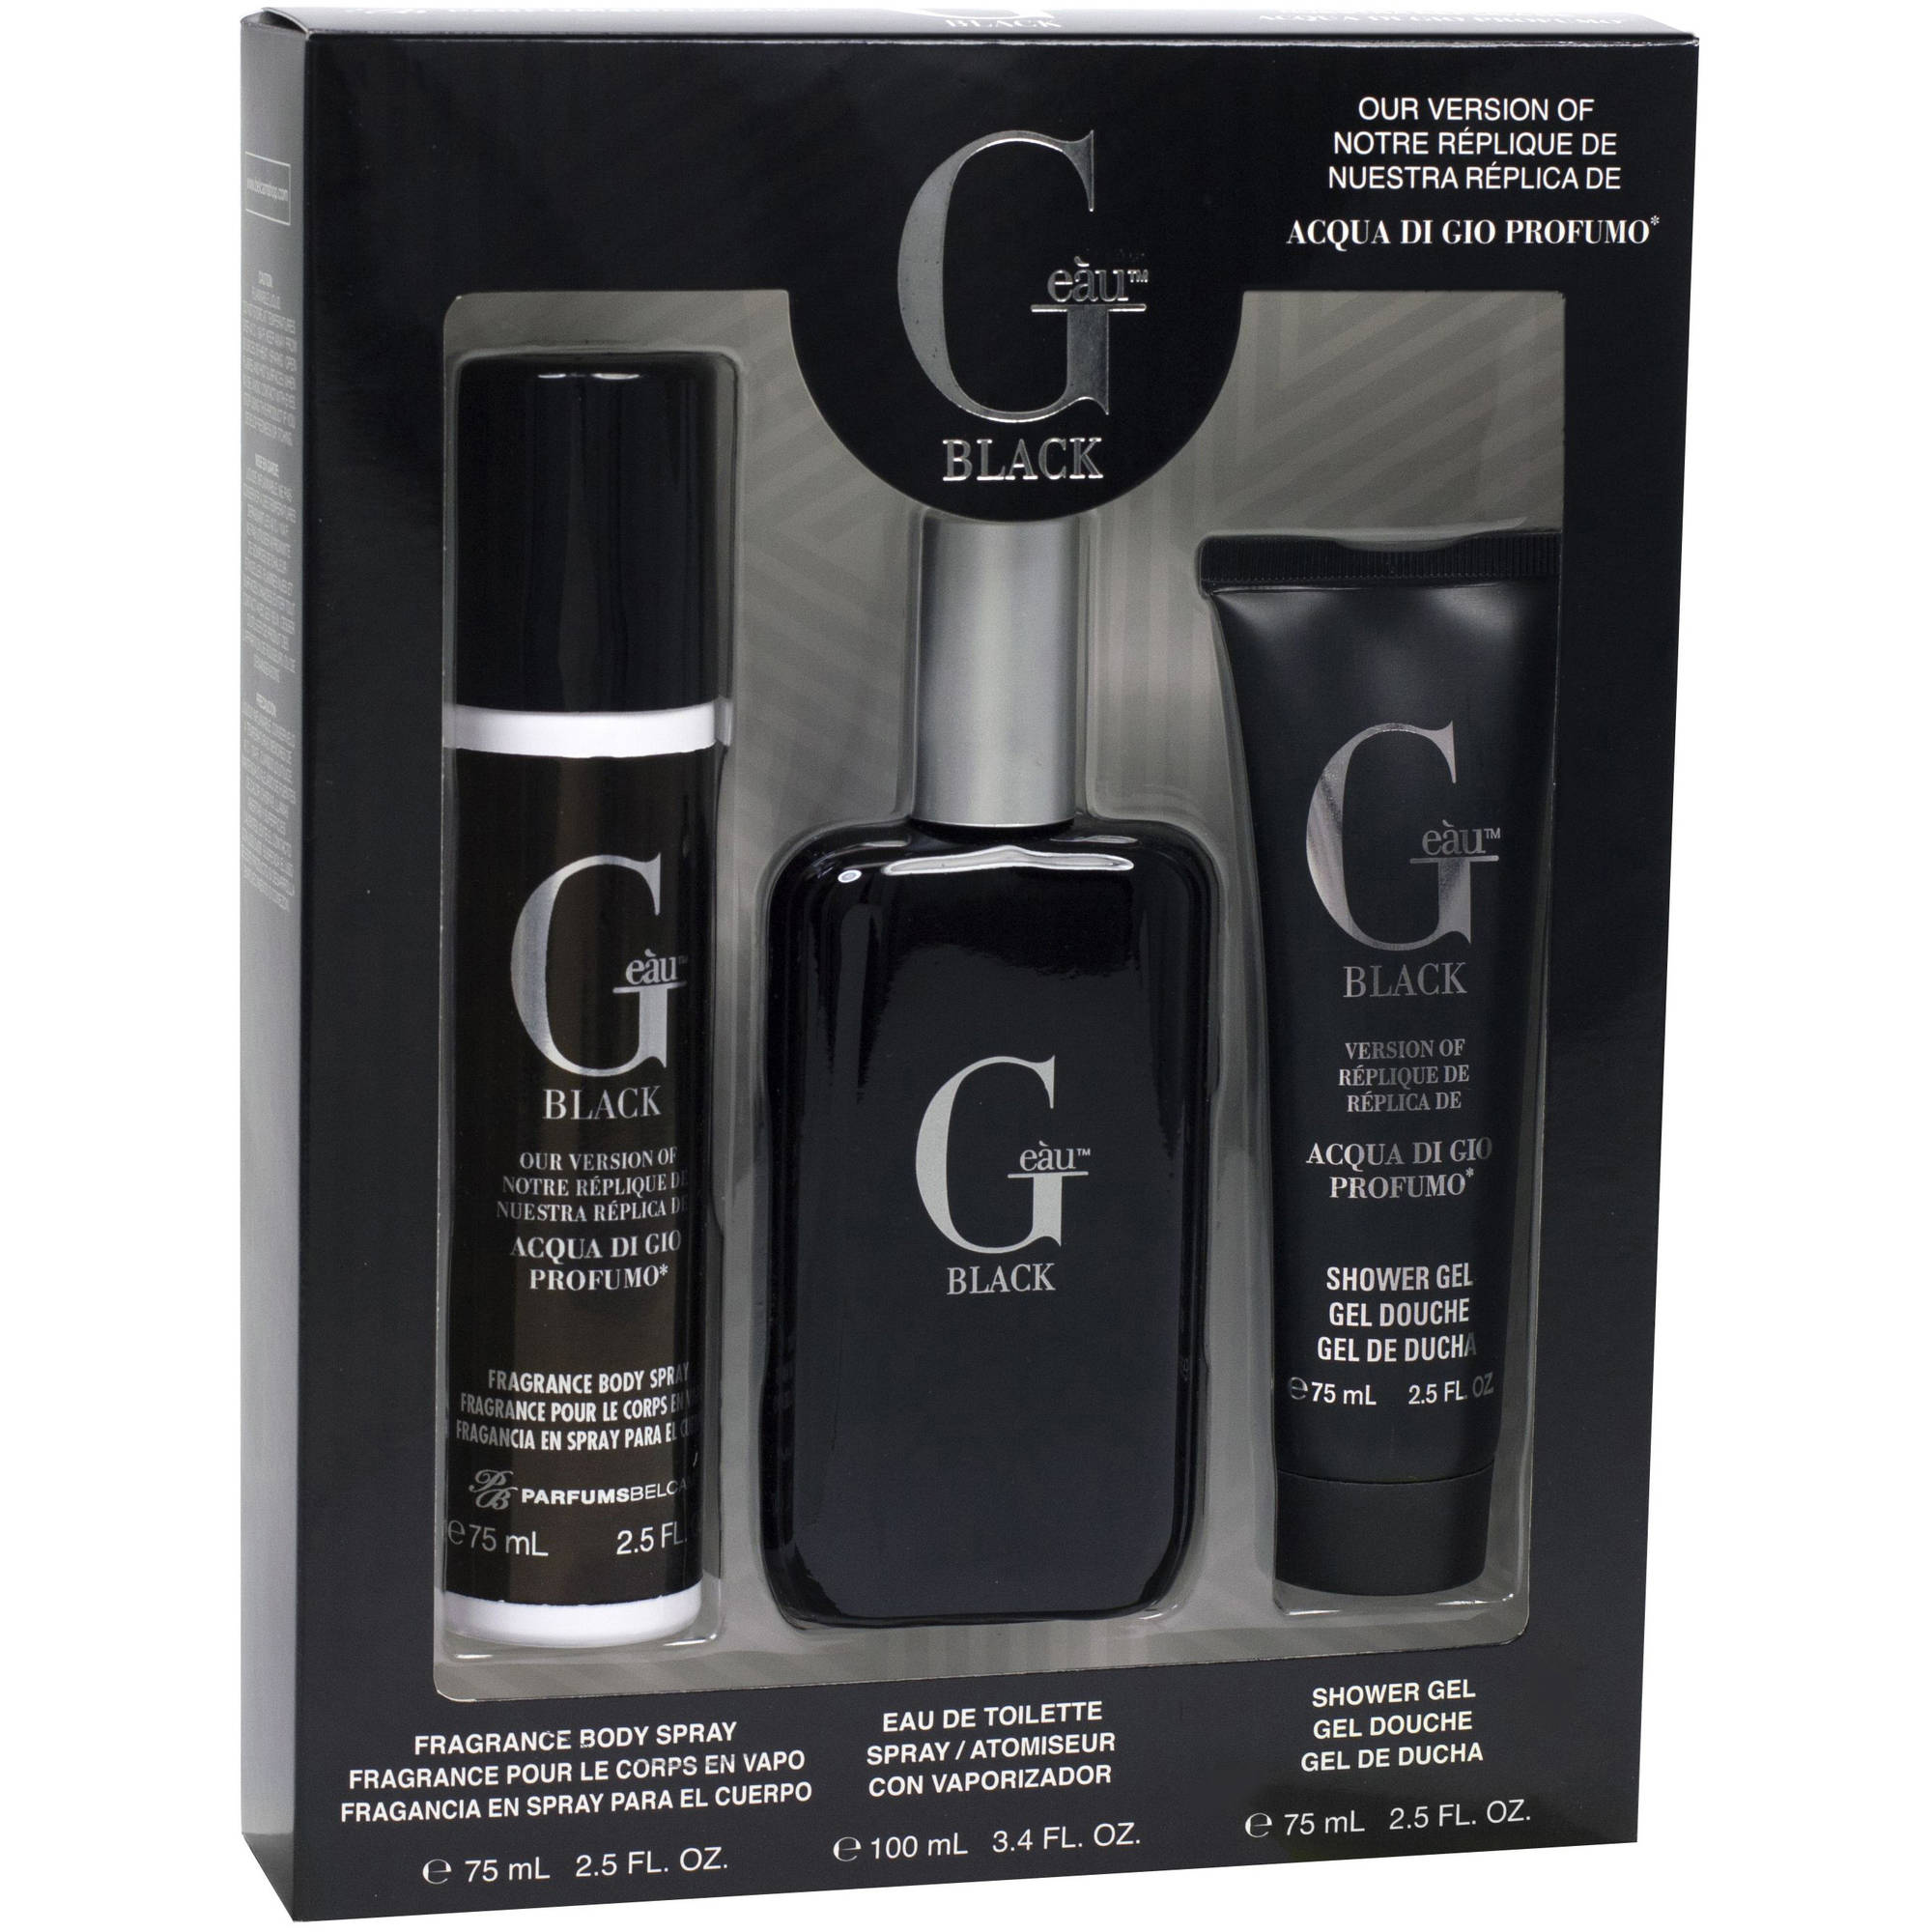 G Eau Black Version of Acqua di Gio Profumo for Men Fragrance Gift Set, 3 pc